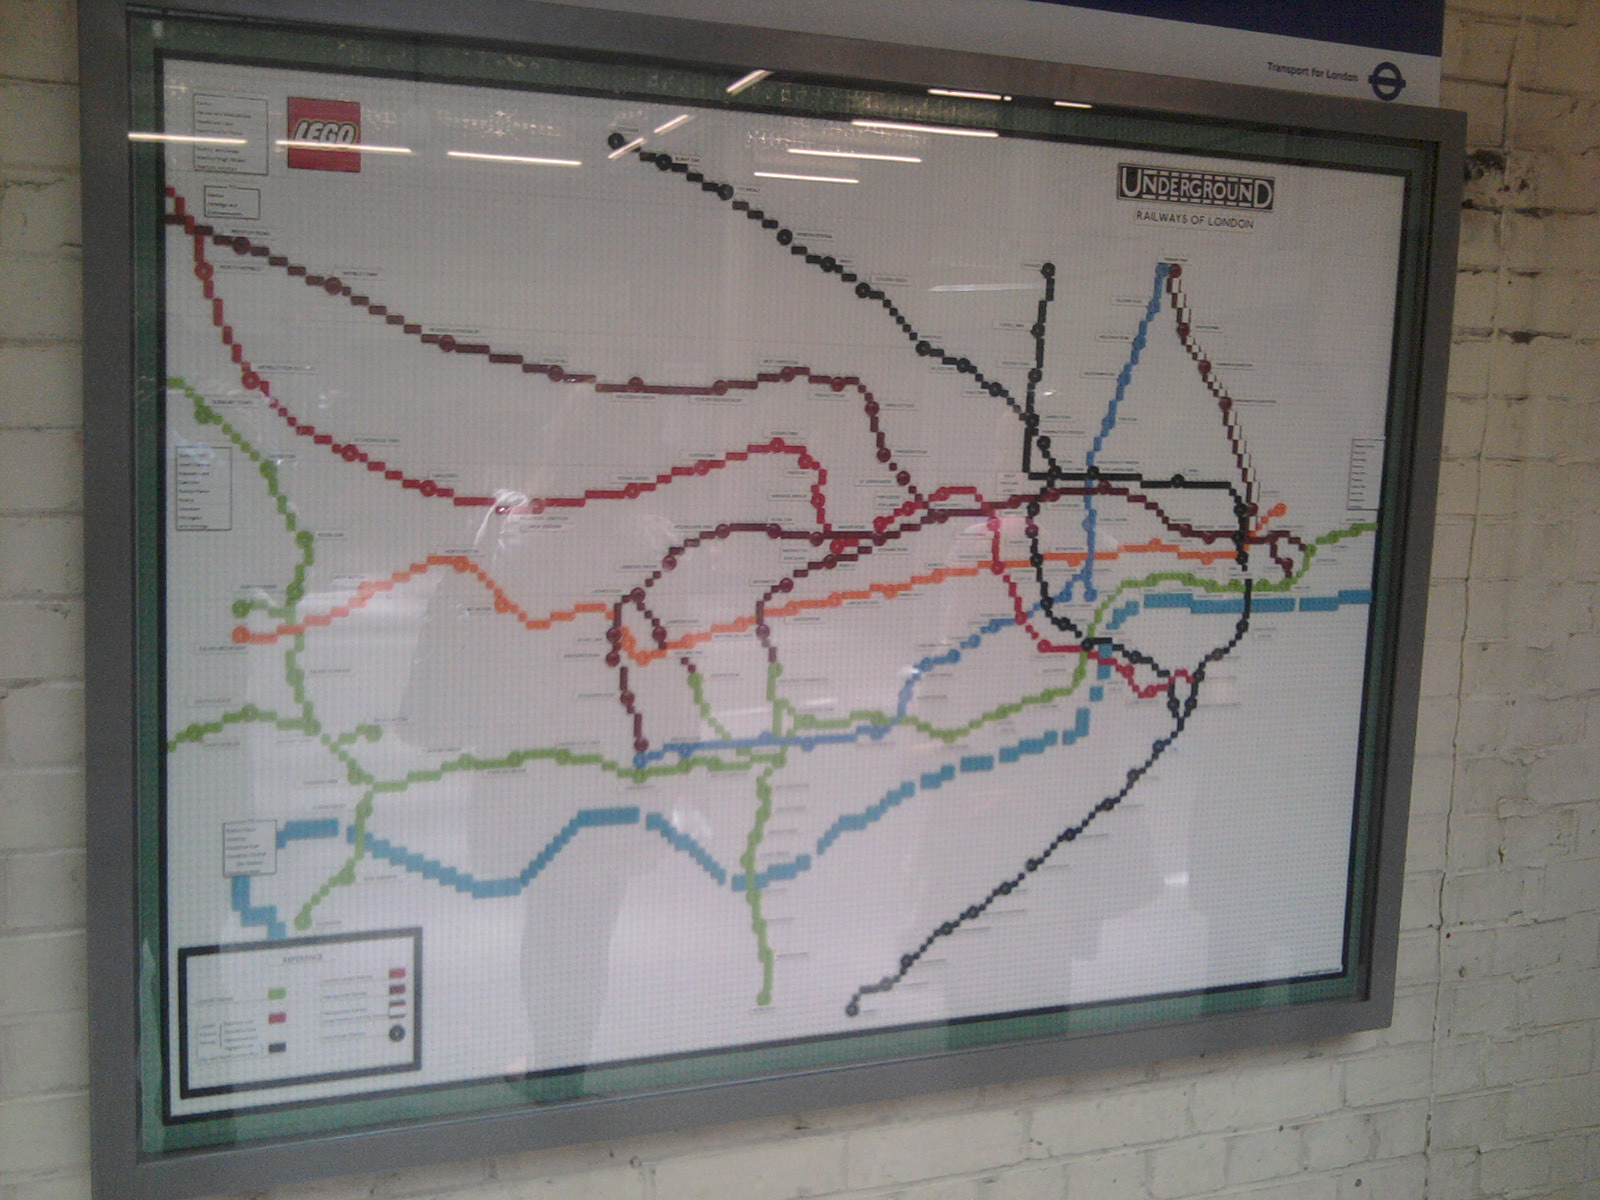 LEGO 1927 Underground map at South Kensington